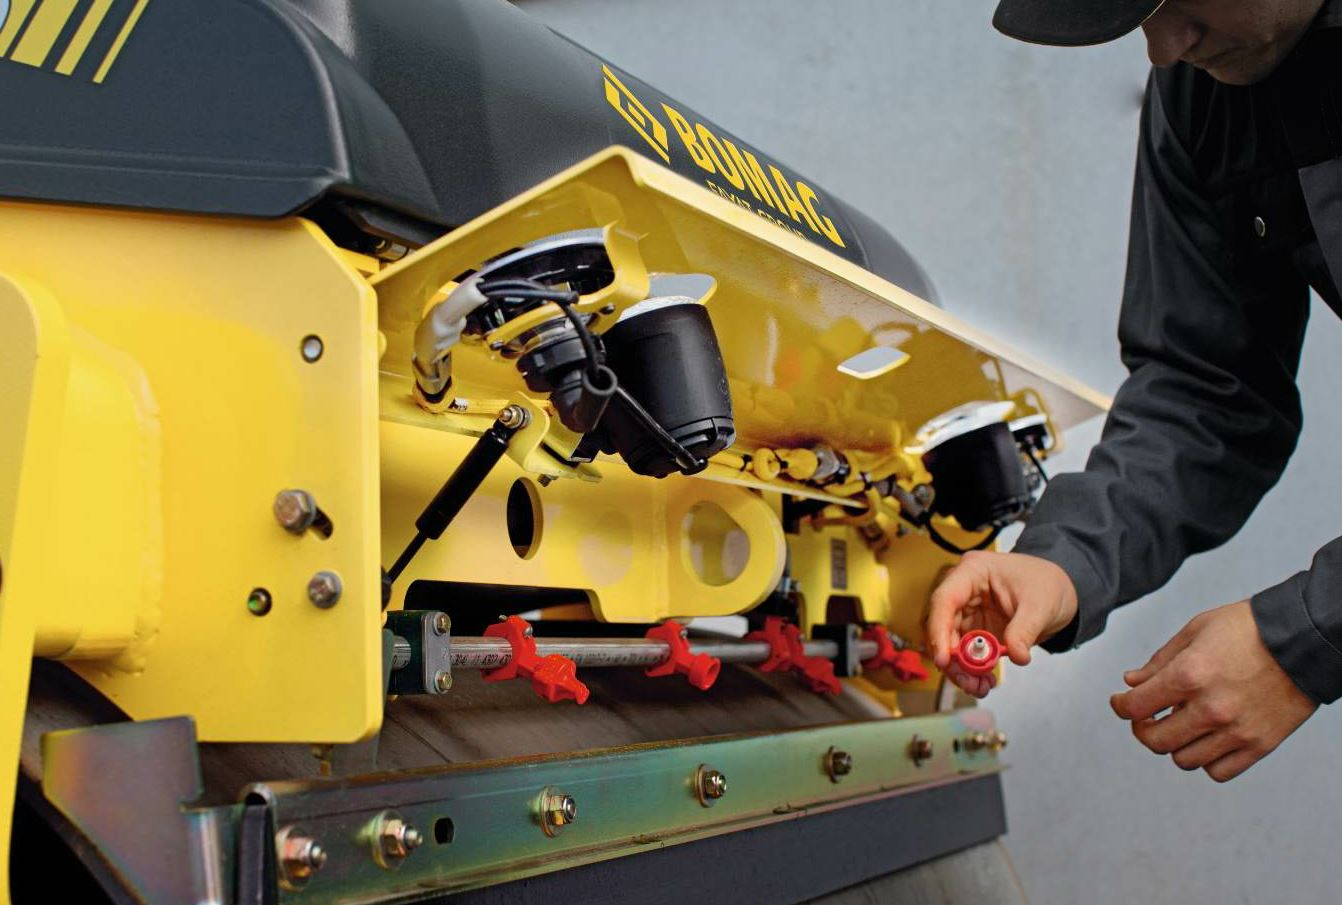 The roller operator should have on hand spare small parts such as spray nozzles and fuses.